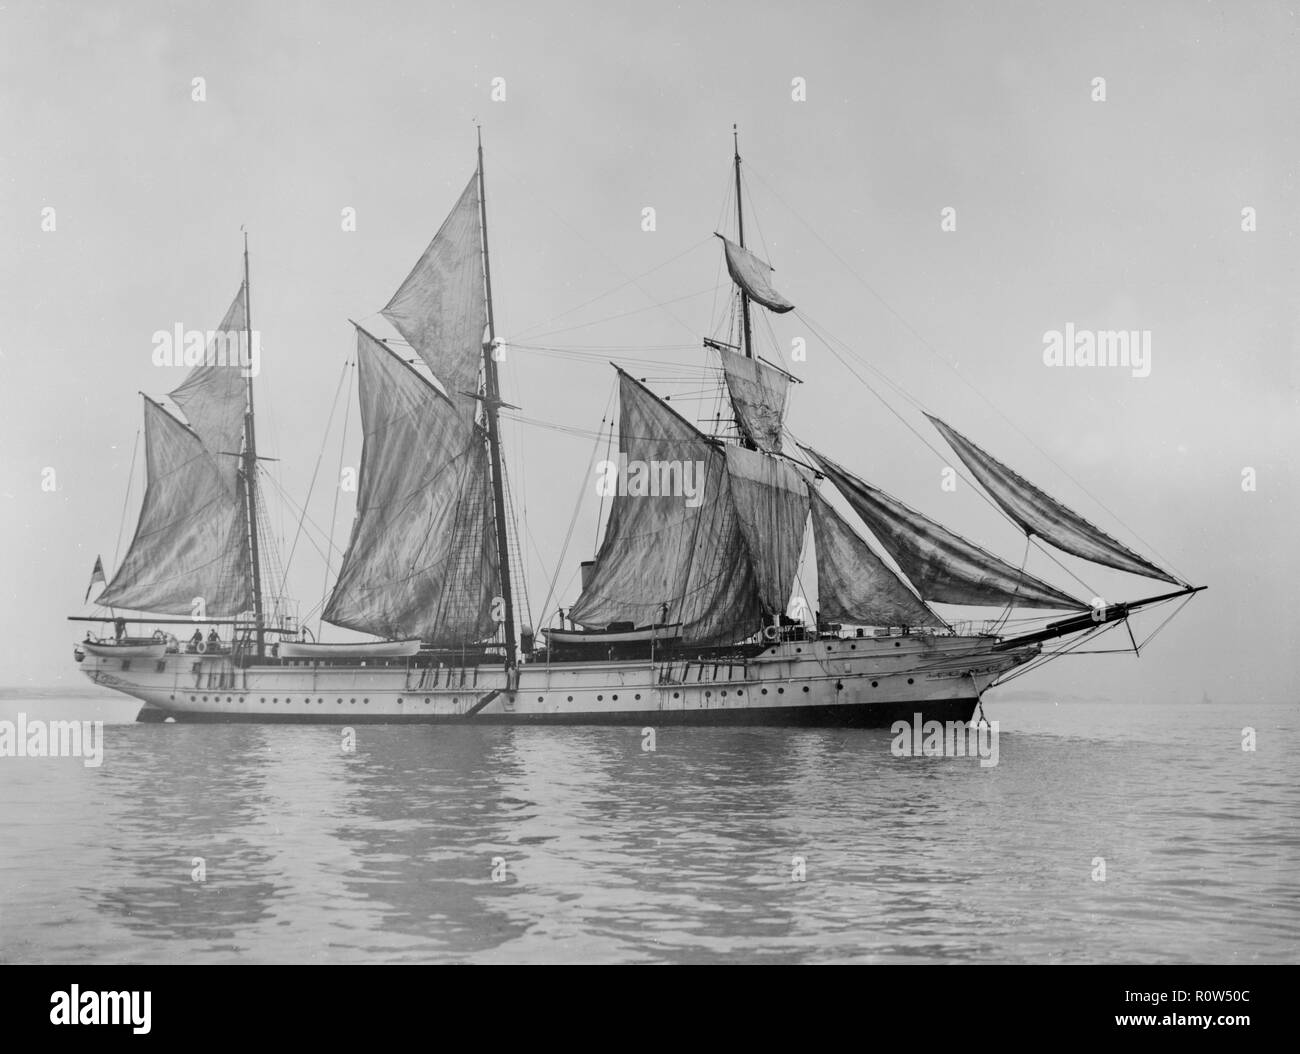 The steam yacht 'Wanderer' (later named 'Vagus') hoisting sails. Built by Robert Steele and Co, Greenock in 1878 for Charles Joseph Lambert as a private yacht, Wanderer was described as the most luxurious private steam yacht ever built. She was registered with the Royal Yacht Squadron and became known as 'RYS Wanderer', based at Cowes, Isle of Wight. In 1903 she was acquired by the Royal Navy and renamed 'HMS Sealark'. - Stock Image